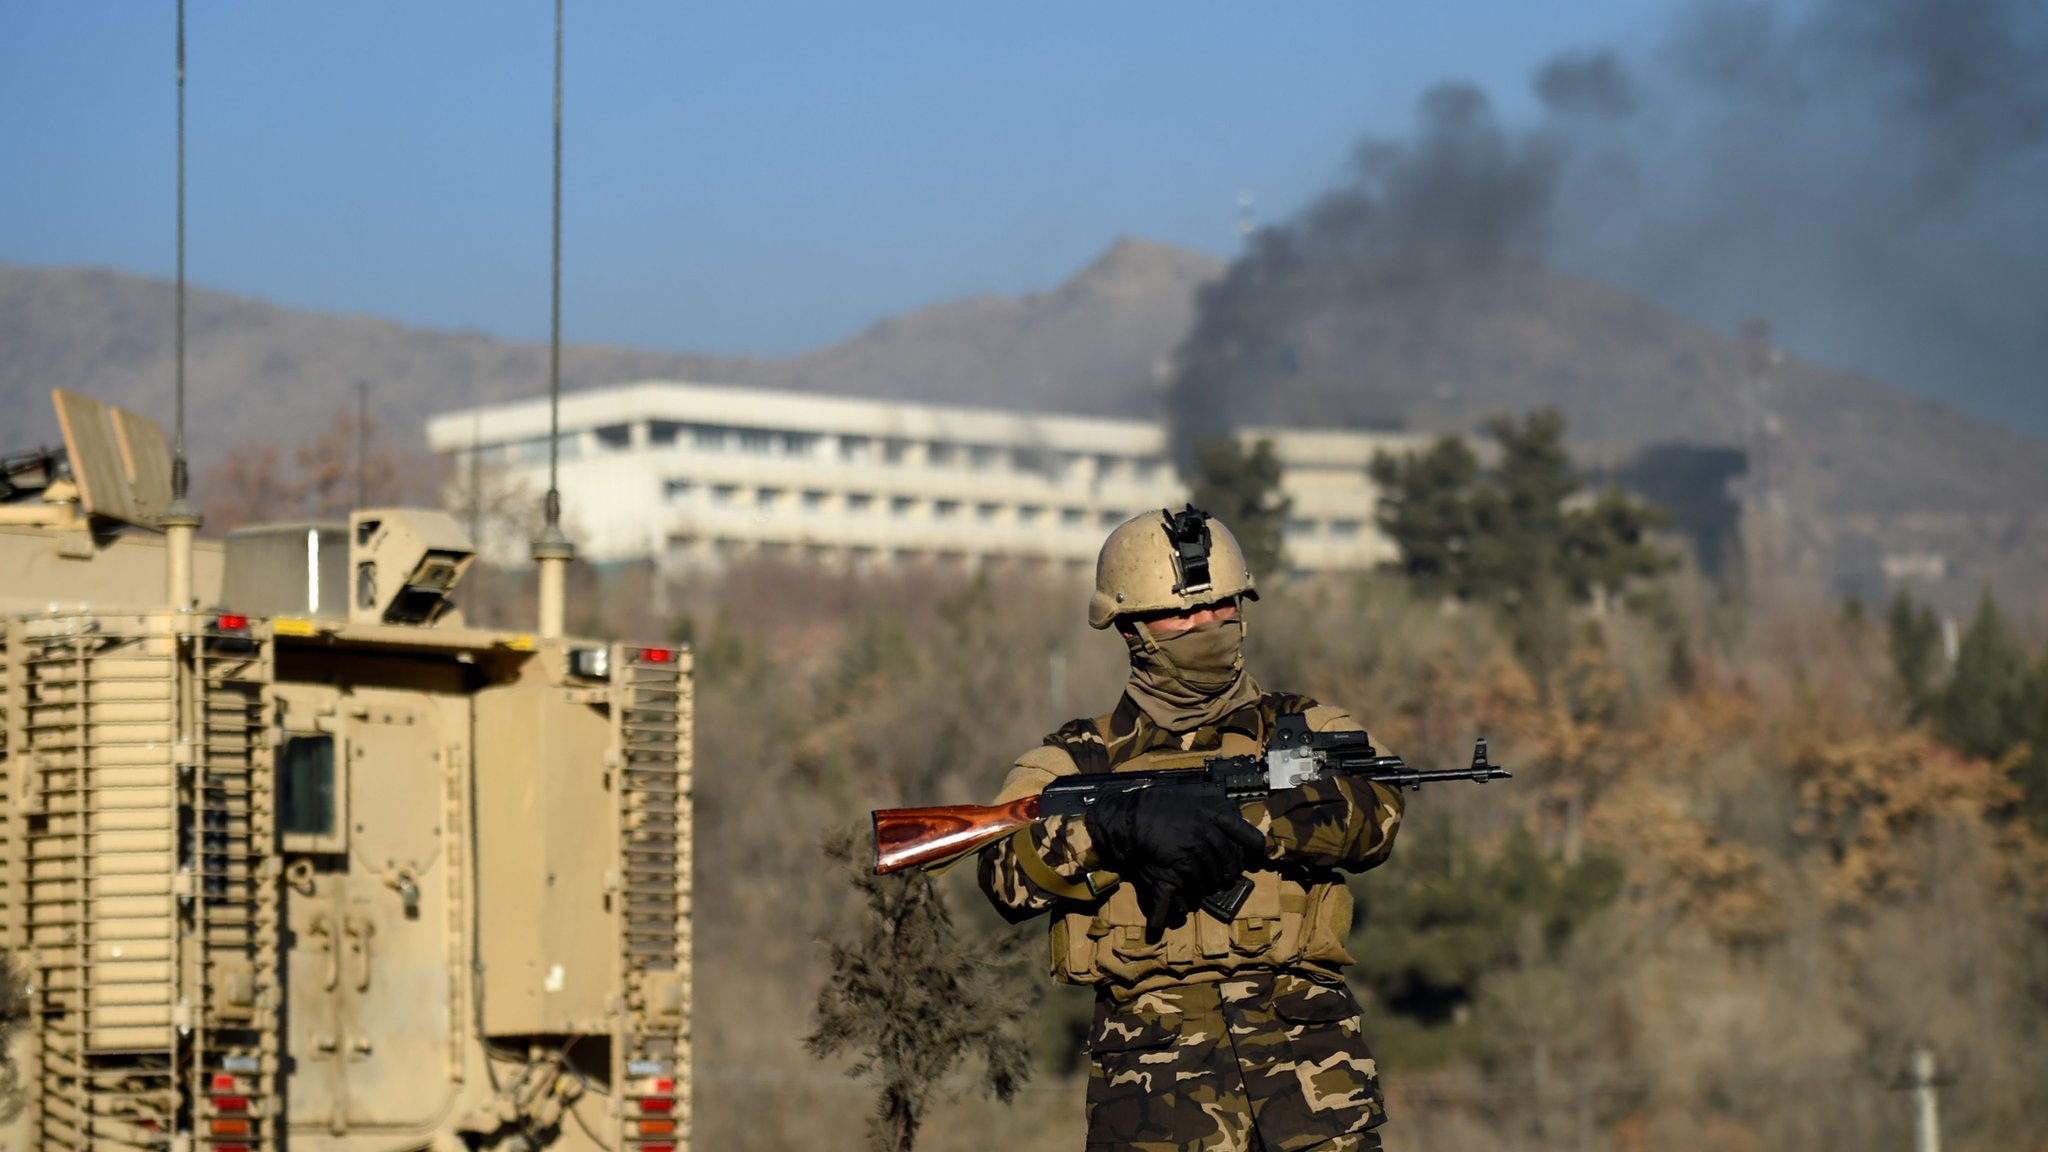 Kabul: Gunmen shot Intercontinental Hotel diners - eyewitness